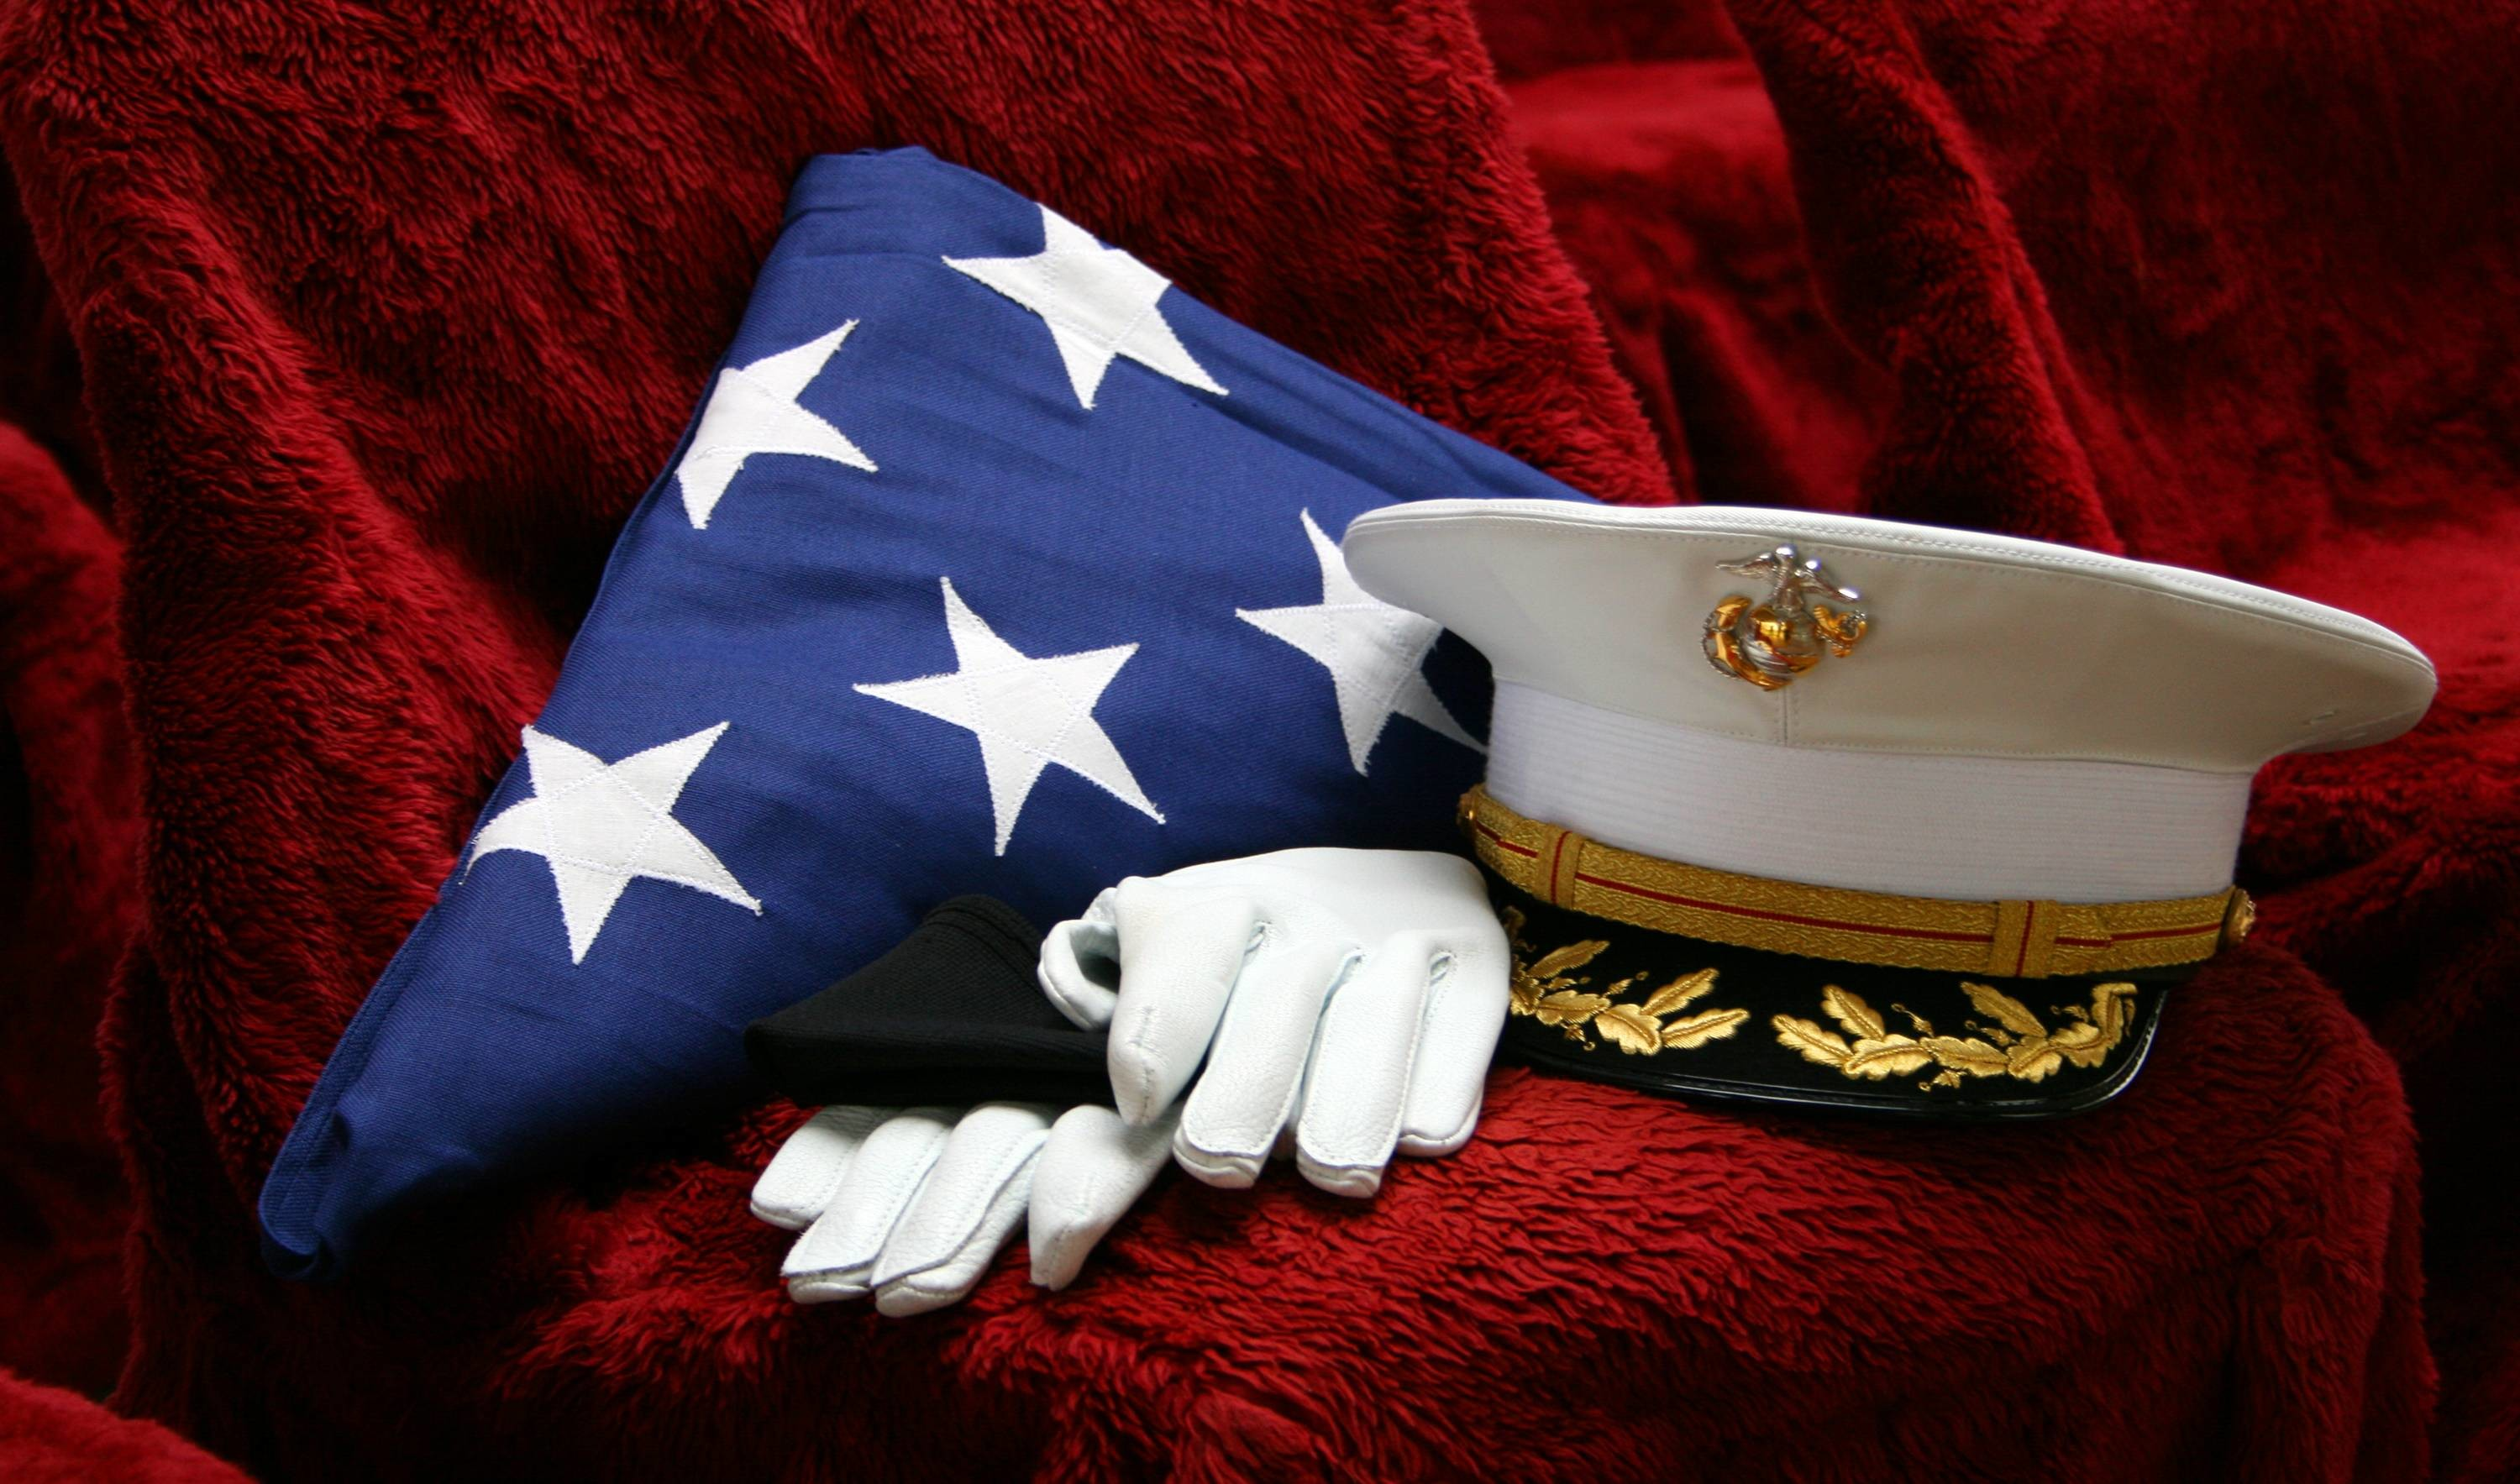 Usmc Wallpapers 143570 High Definition Wallpapers   Suwall.